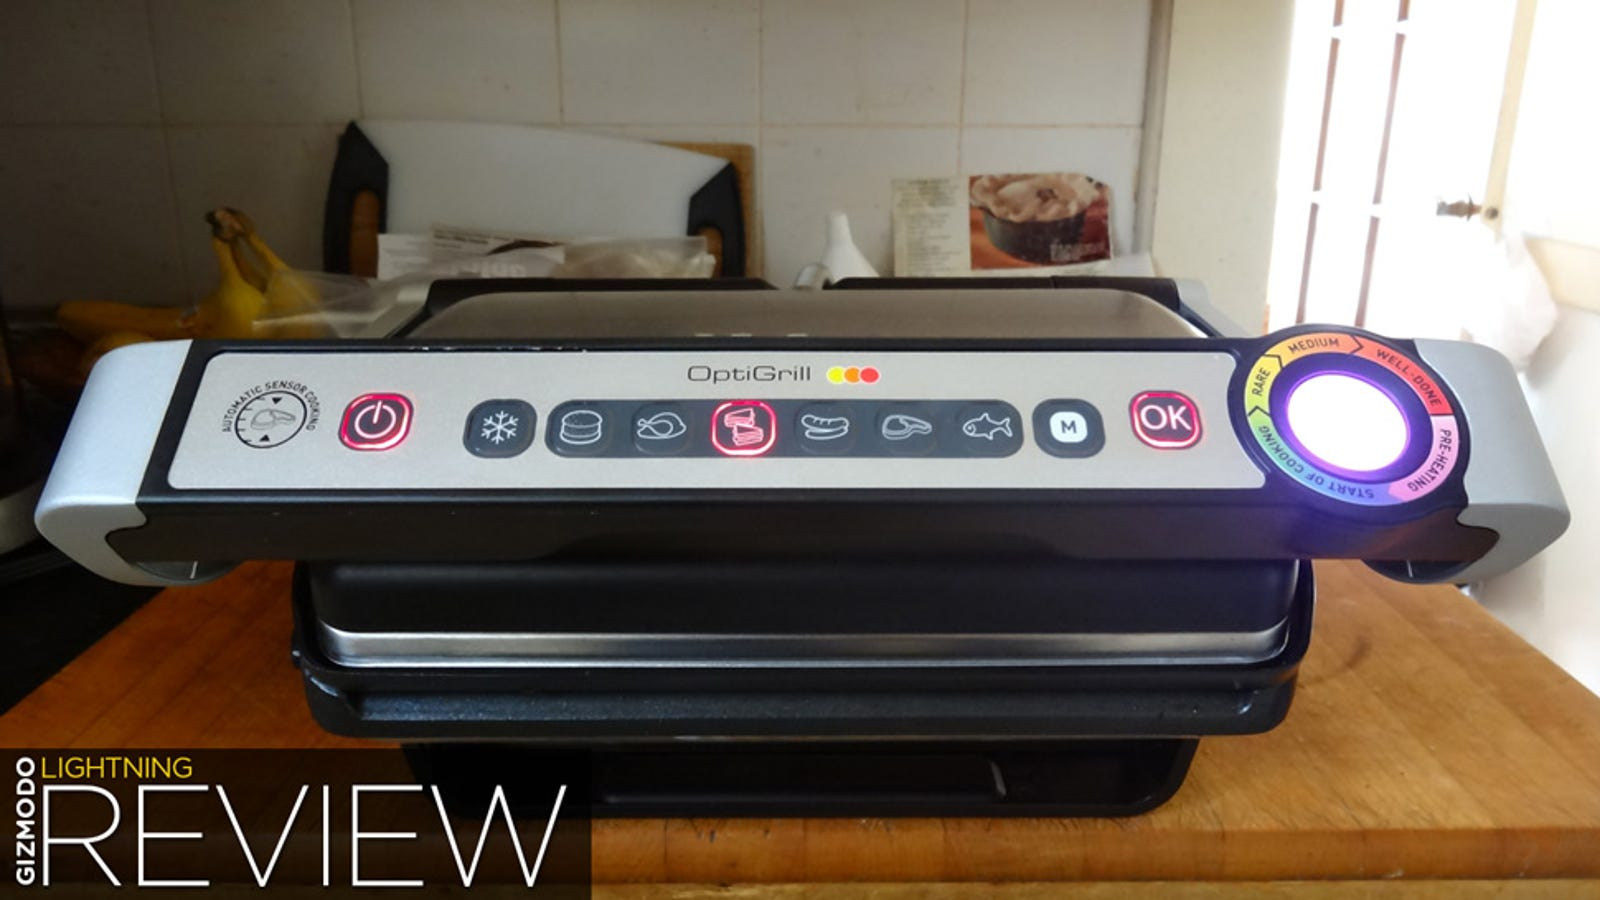 Optigrill Lightning Review It S A George Foreman With